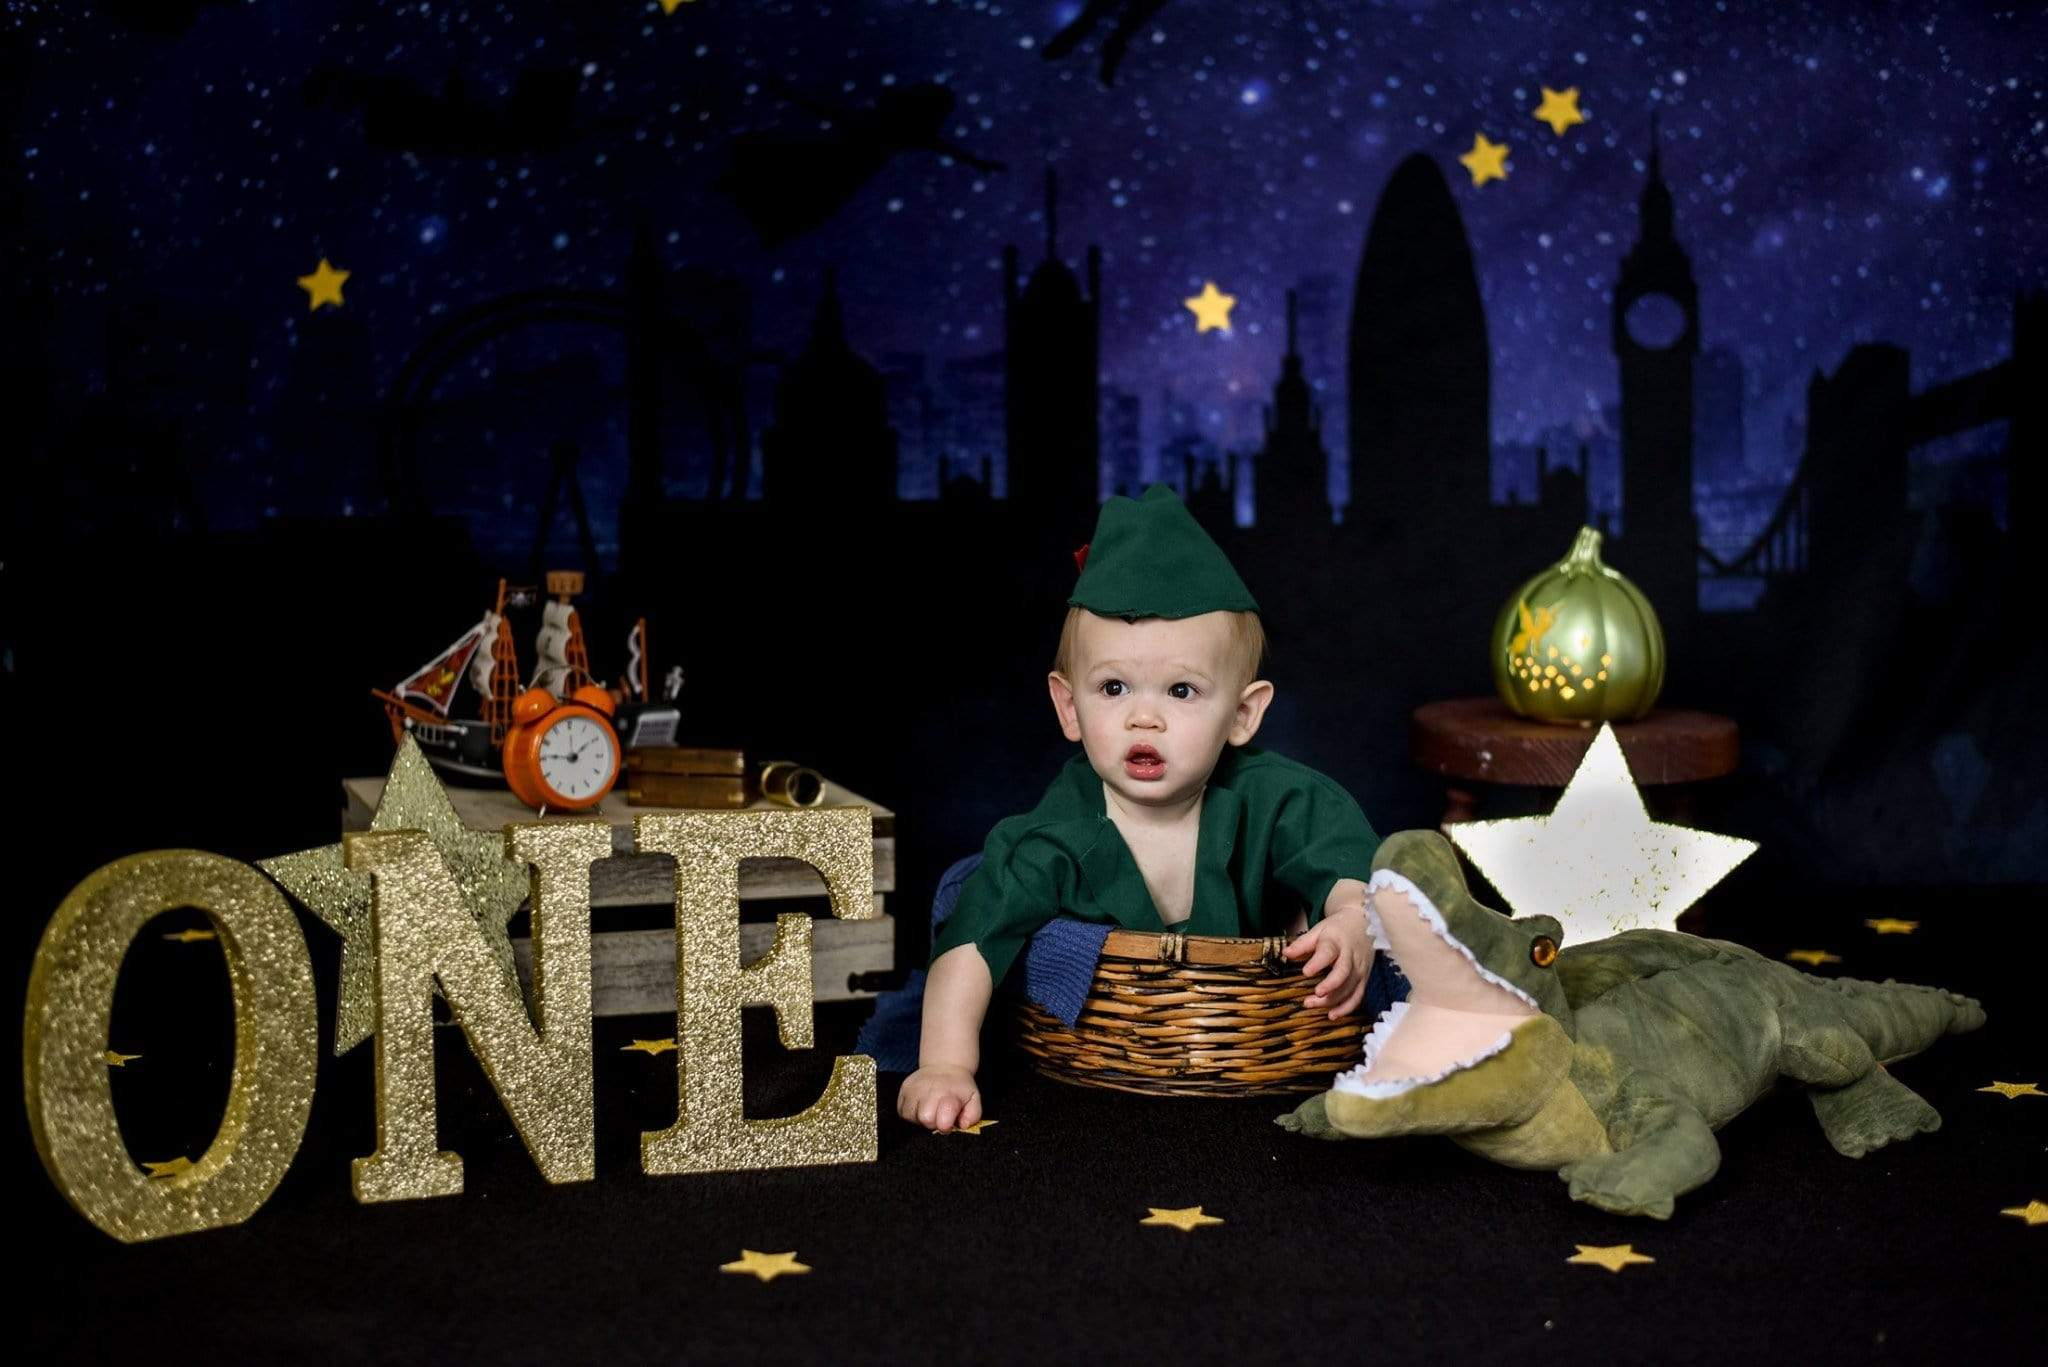 Load image into Gallery viewer, Katebackdrop£ºKate Night Sky Fairystyle Backdrop for Photography Designed By Amanda Moffatt